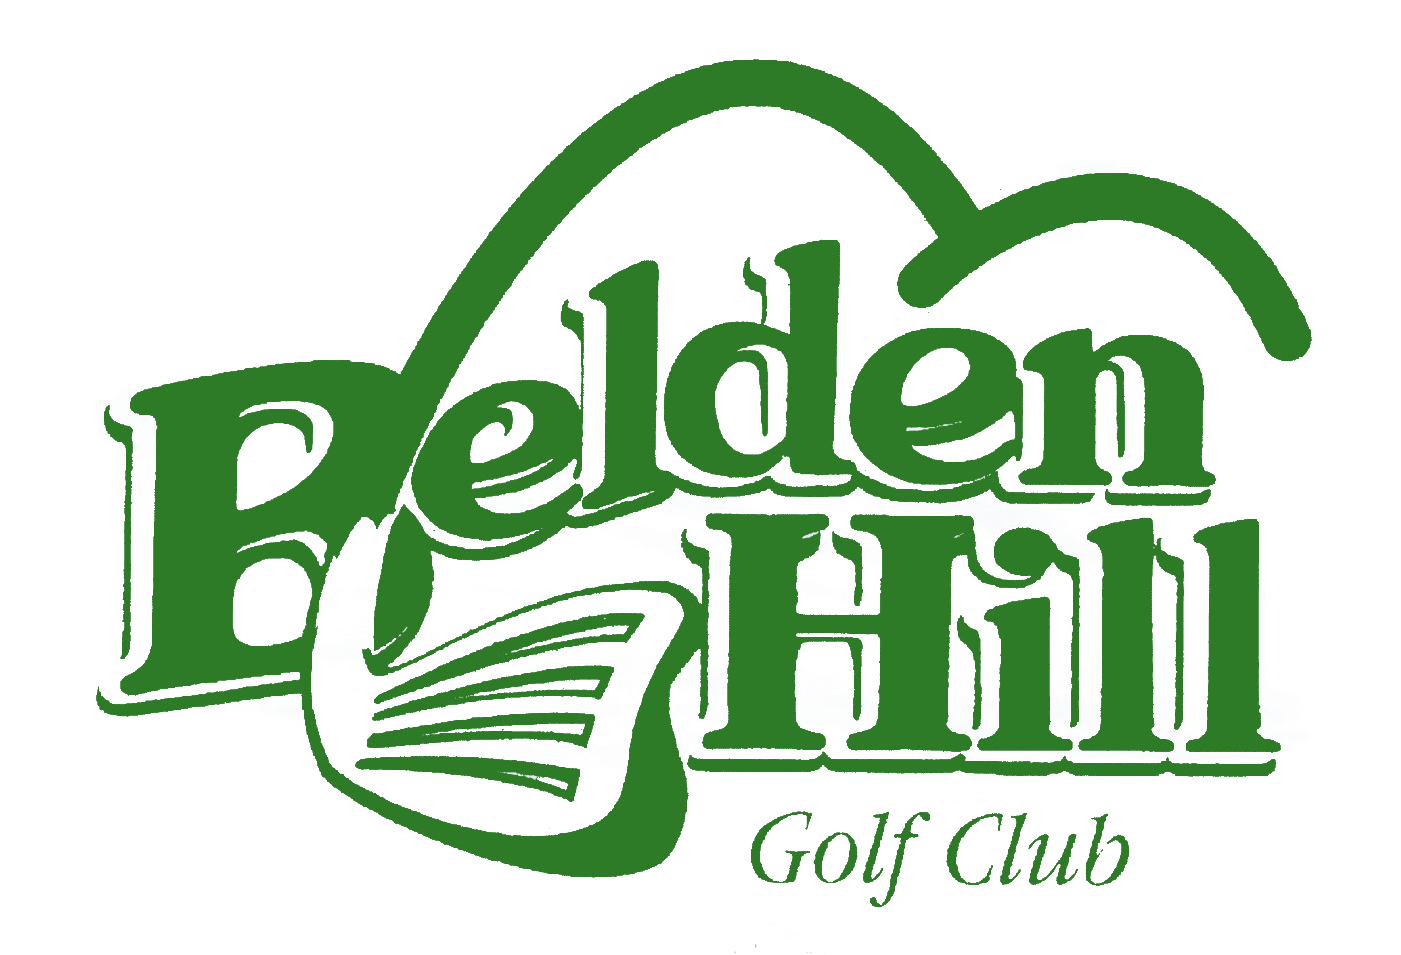 Belden Hill Golf Club